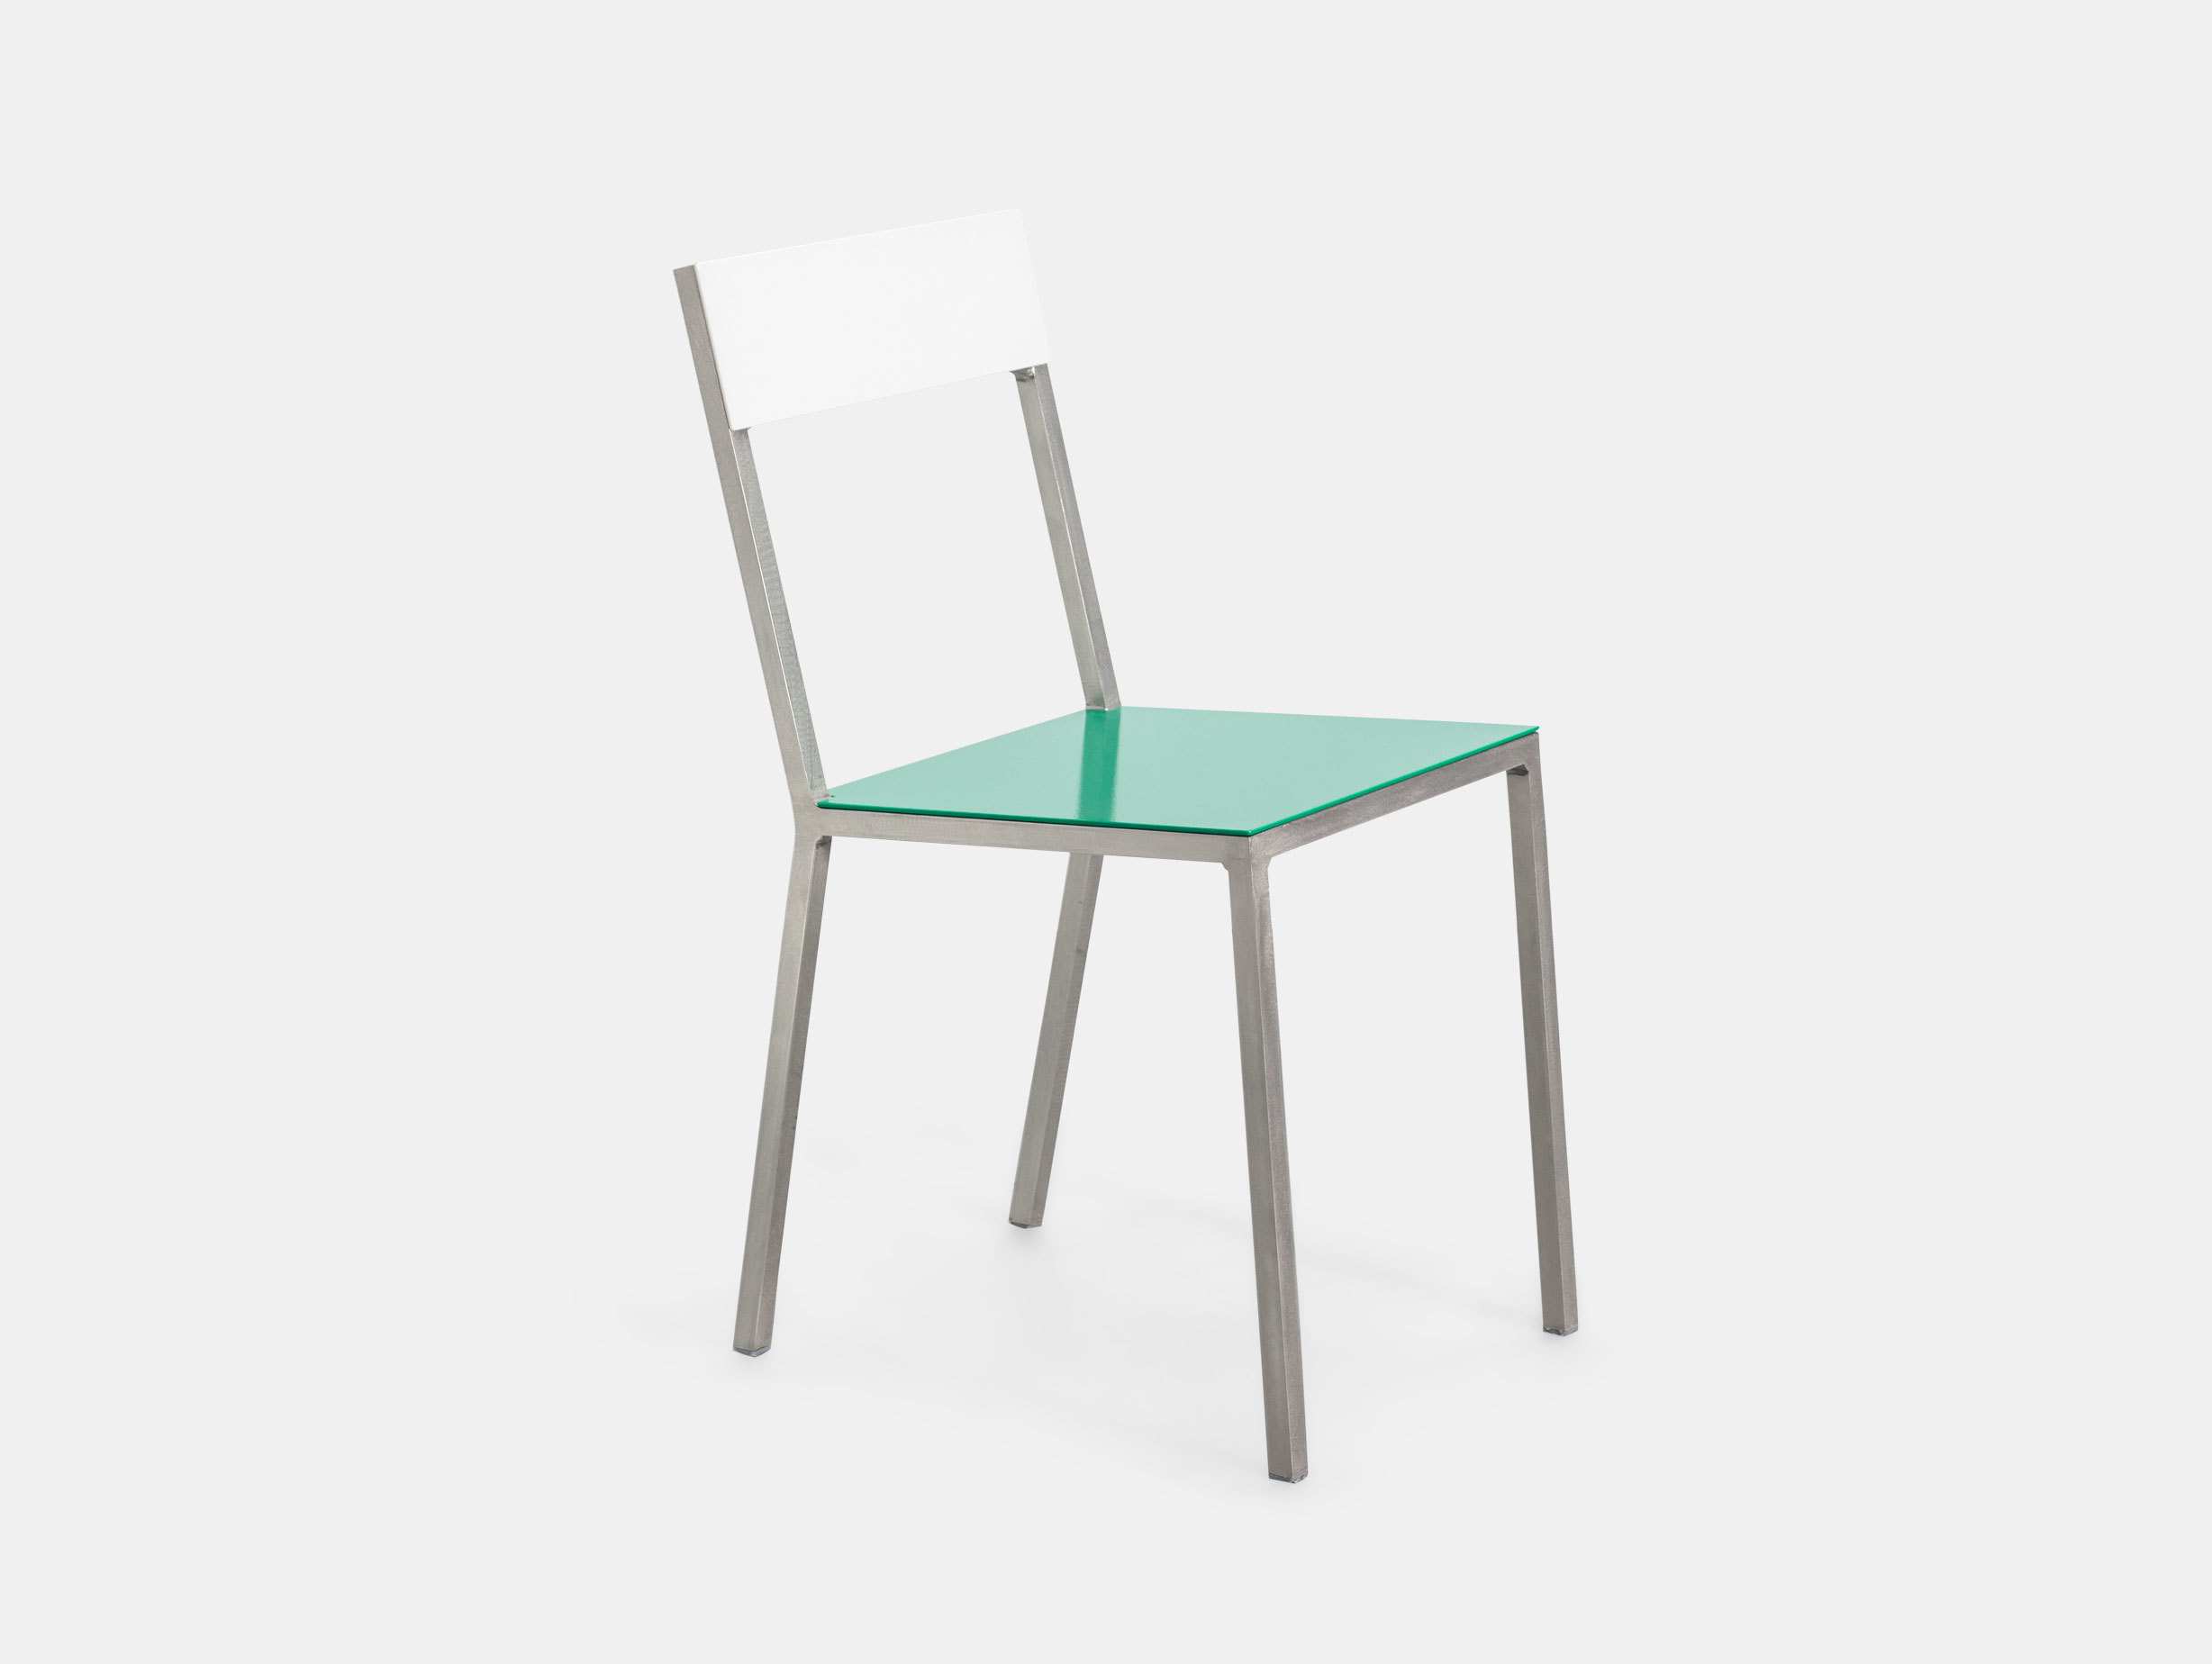 Valerie Objects Alu Chair White Green Muller Van Severen